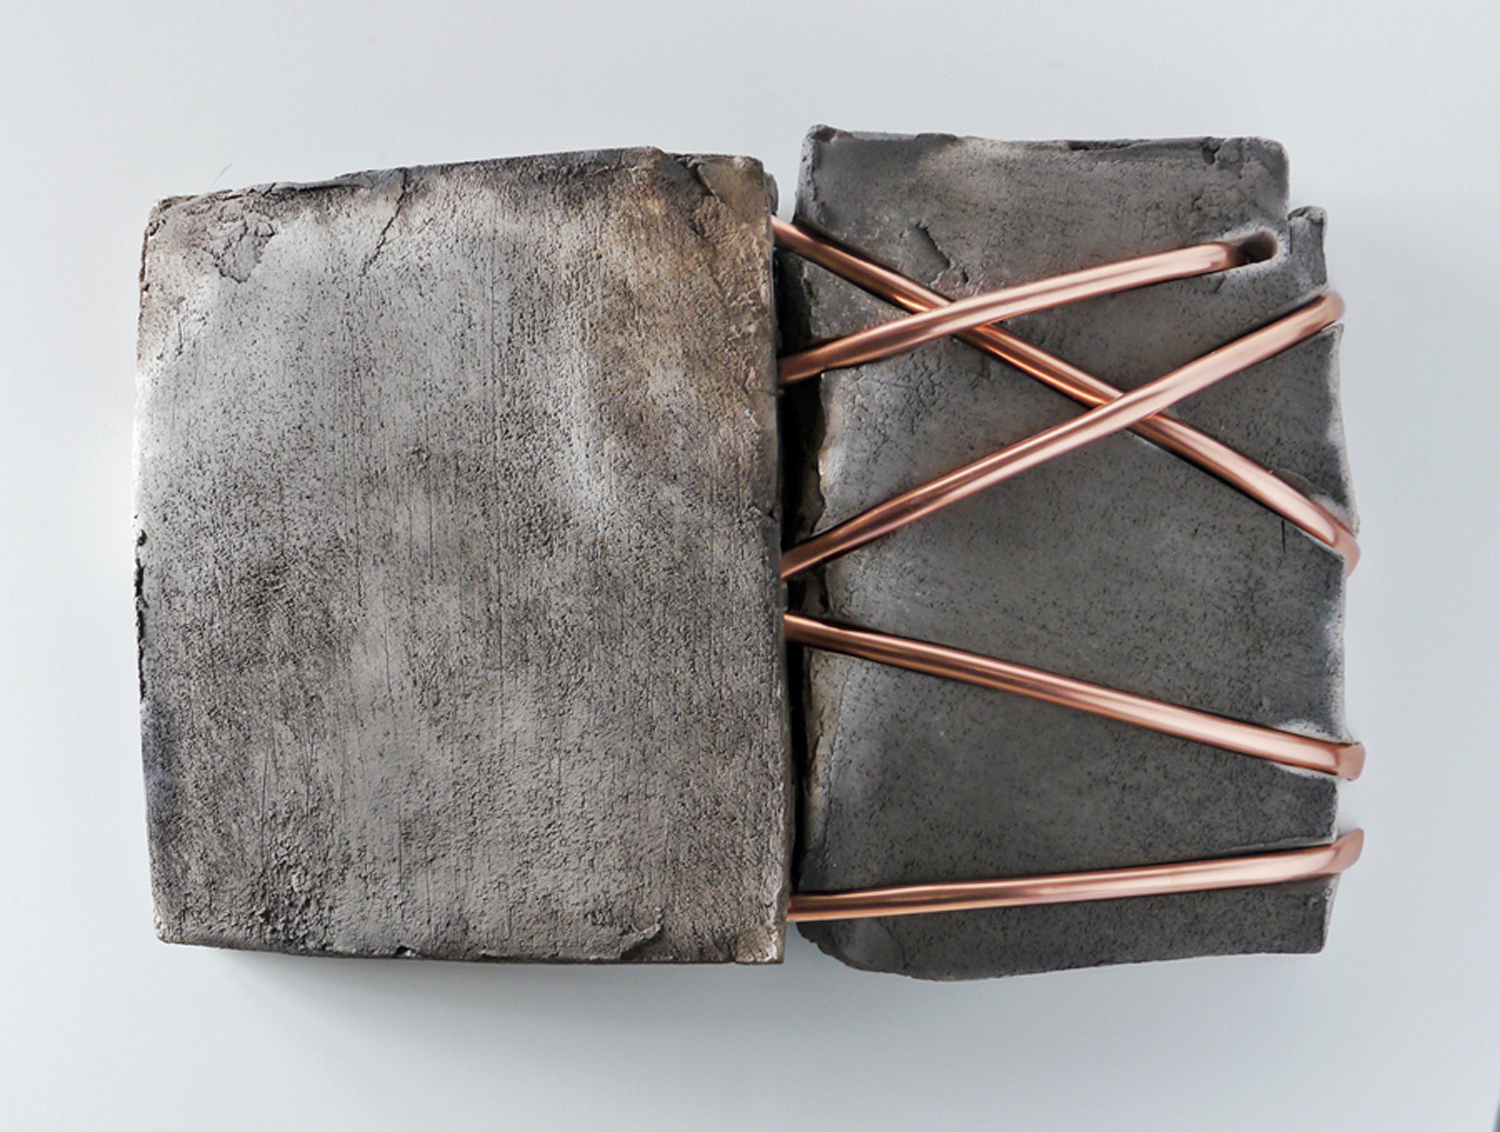 Werner Bargsten, Untitled 19, 2017, clay and copper, 18x27 inches.jpg